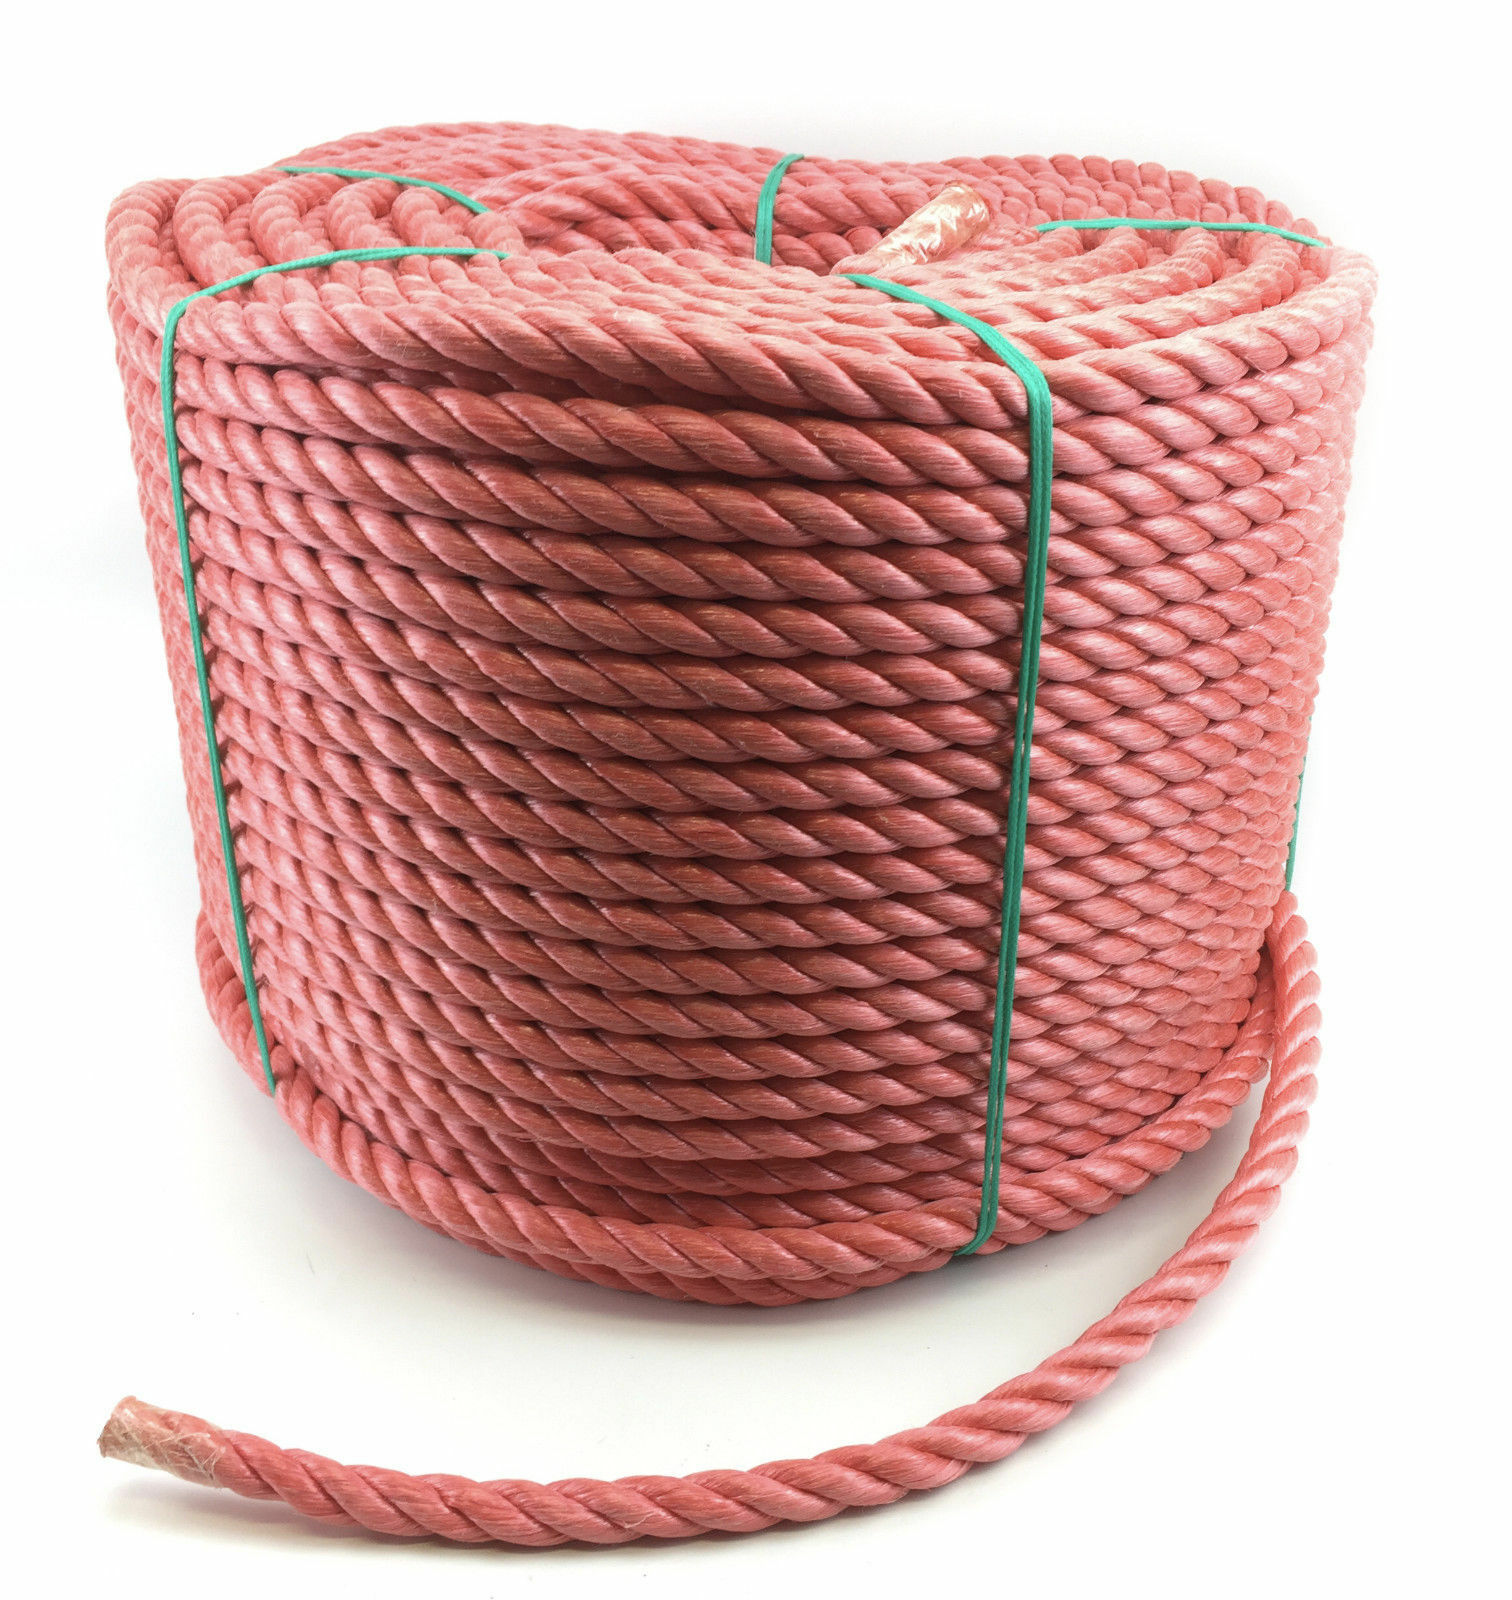 20mm Red Polypropylene Rope x 35 Metres, Poly Rope Coils, Cheap Nylon Rope